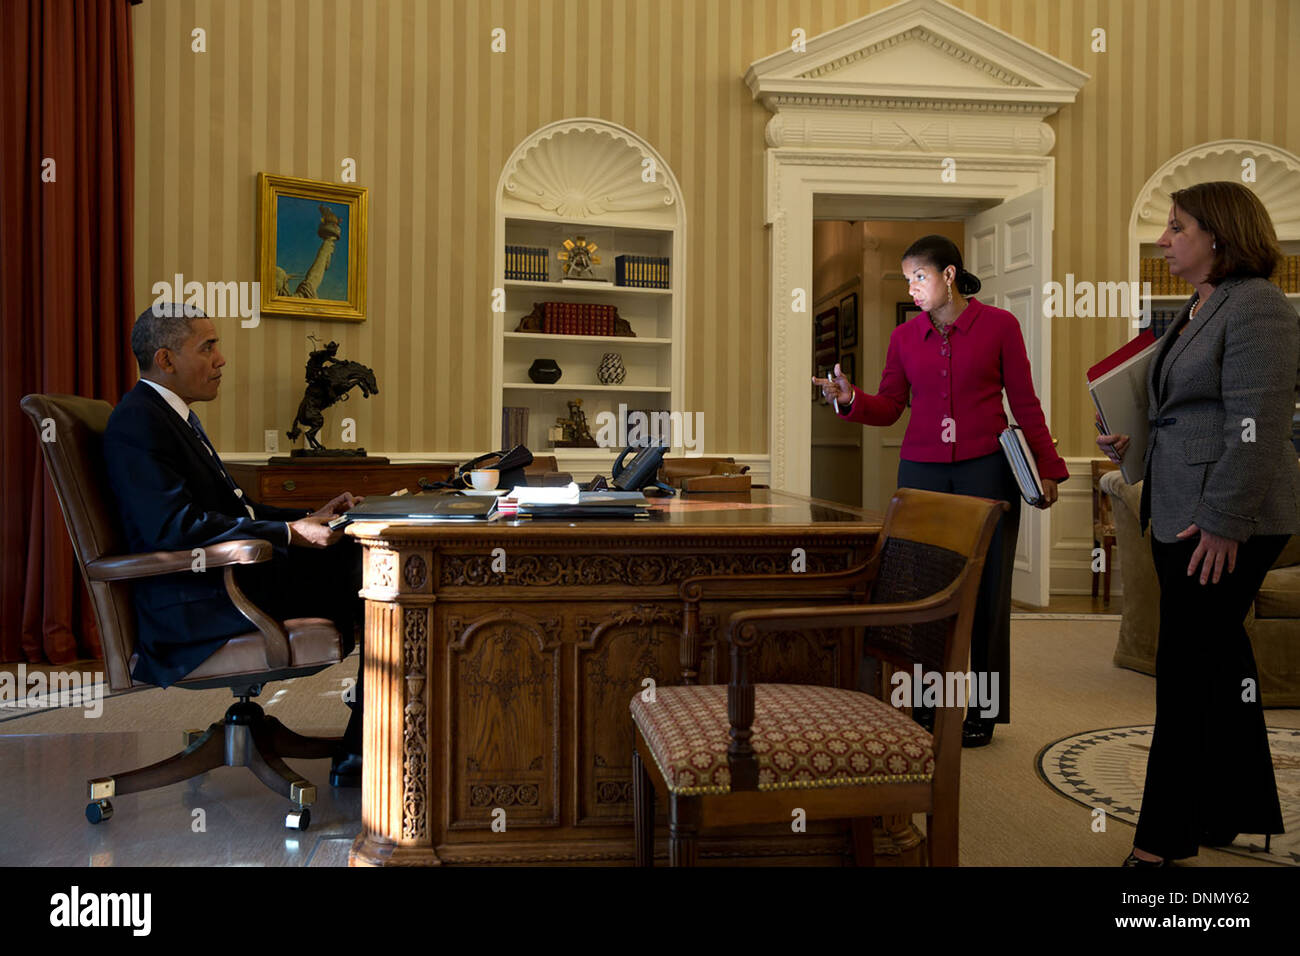 US President Barack Obama talks with advisors Susan Rice and Lisa Monaco before his phone call with Chancellor Angela Merkel of Germany to discuss the latest NSA leak from Edward Snowden in the Oval Office of the White House October 23, 2013 in Washington, DC. - Stock Image